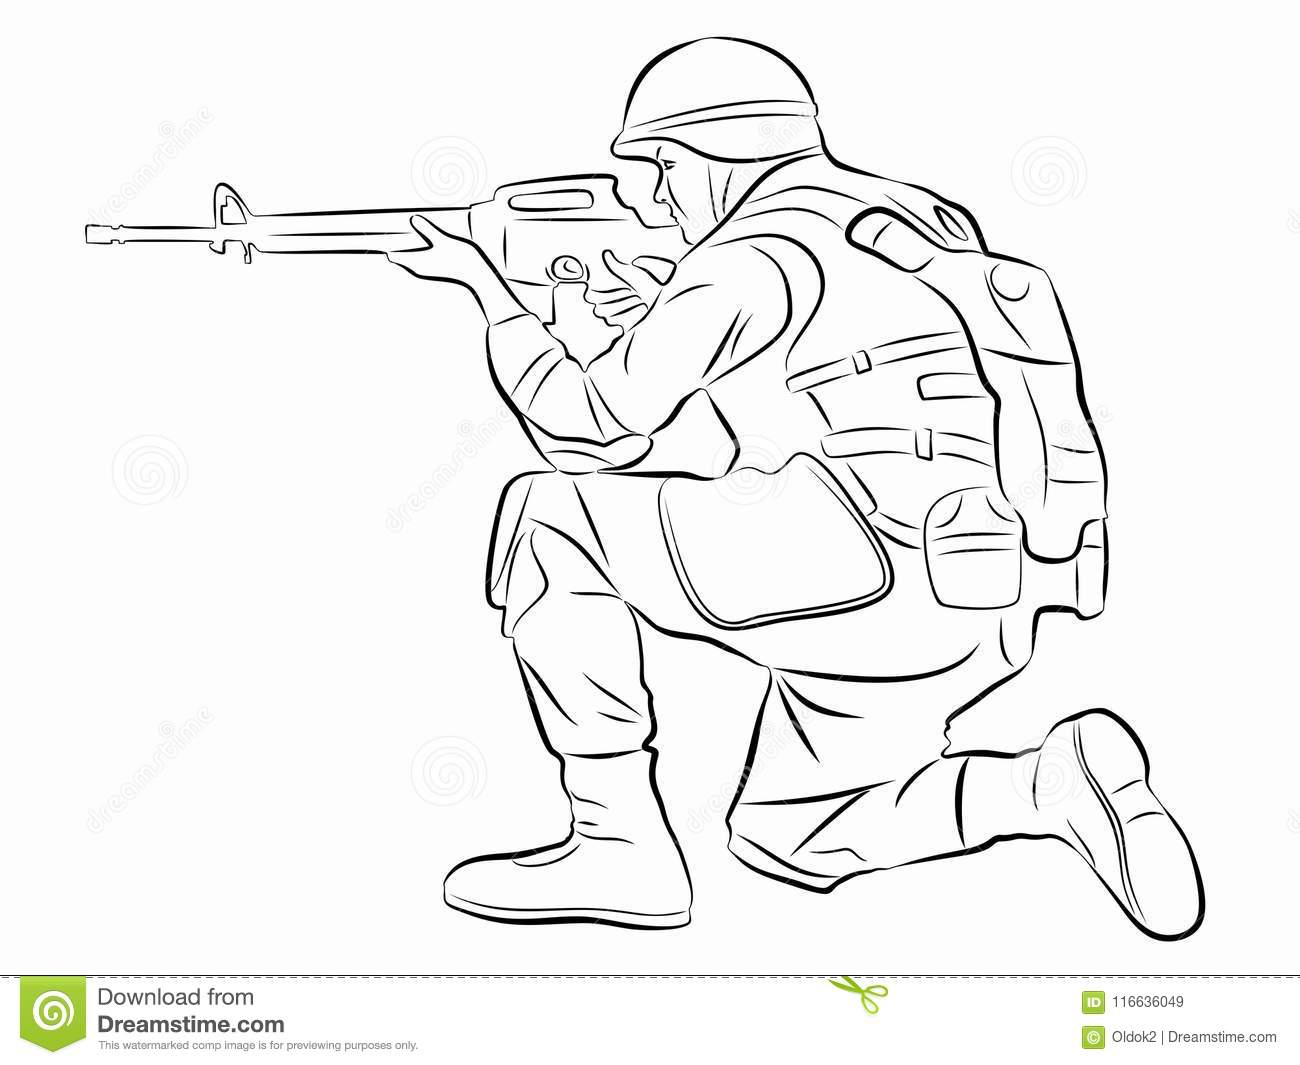 army men fighting coloring pages - photo#17